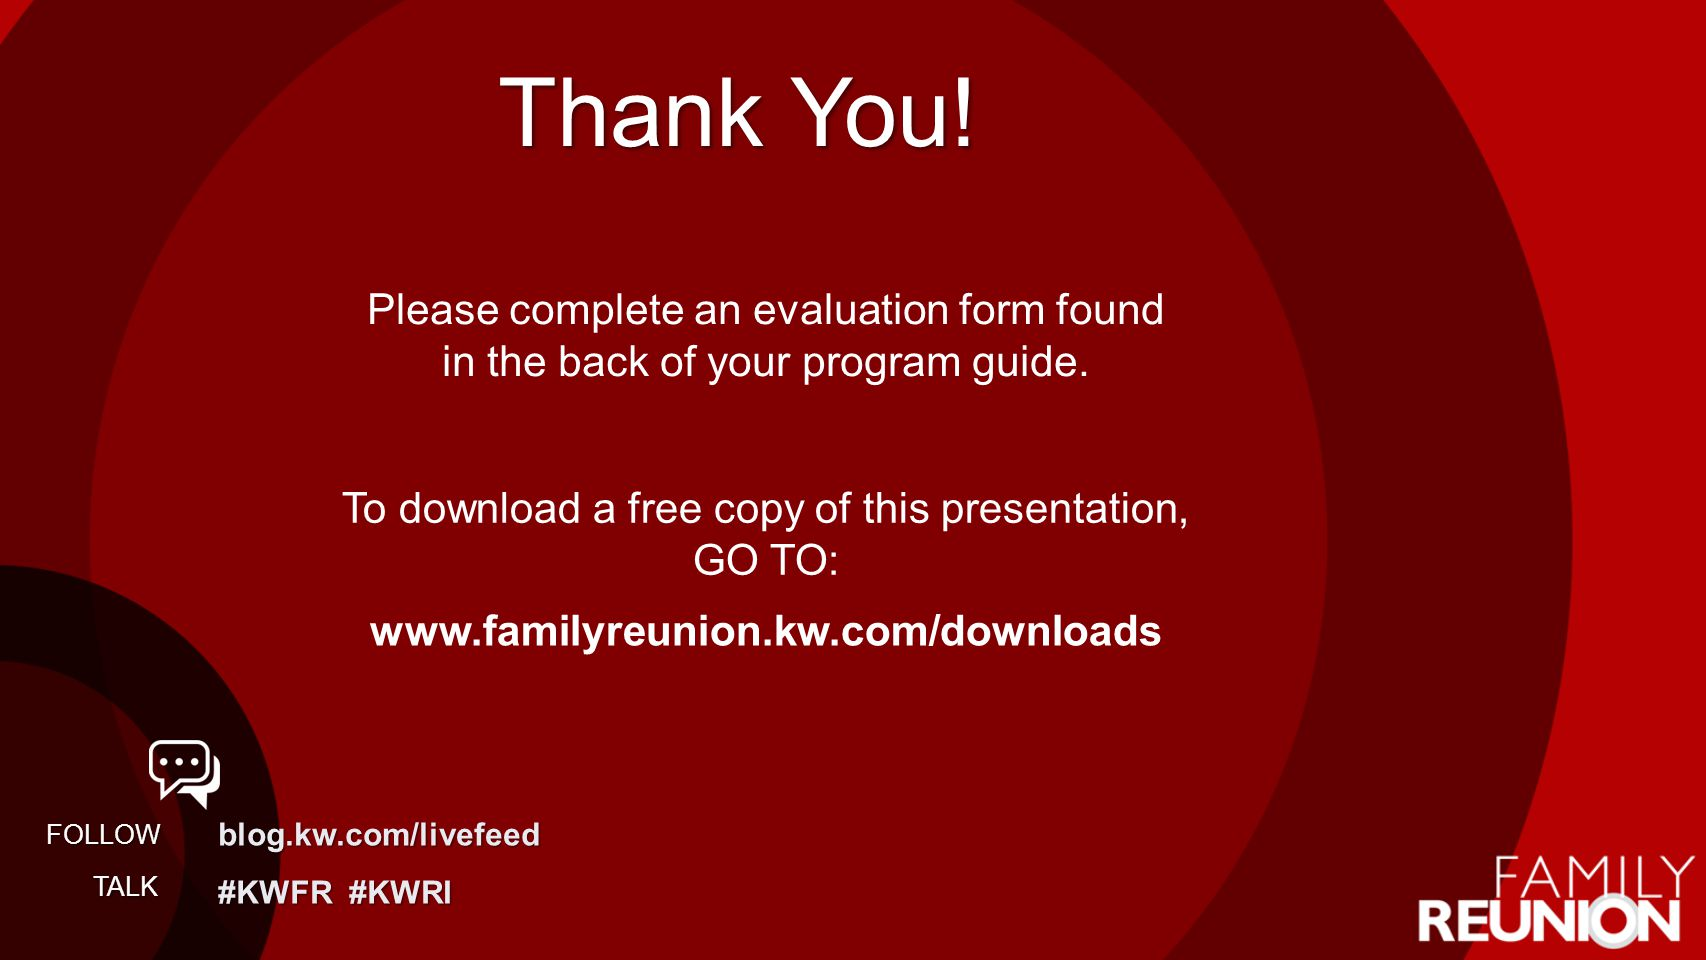 To download a free copy of this presentation, GO TO: